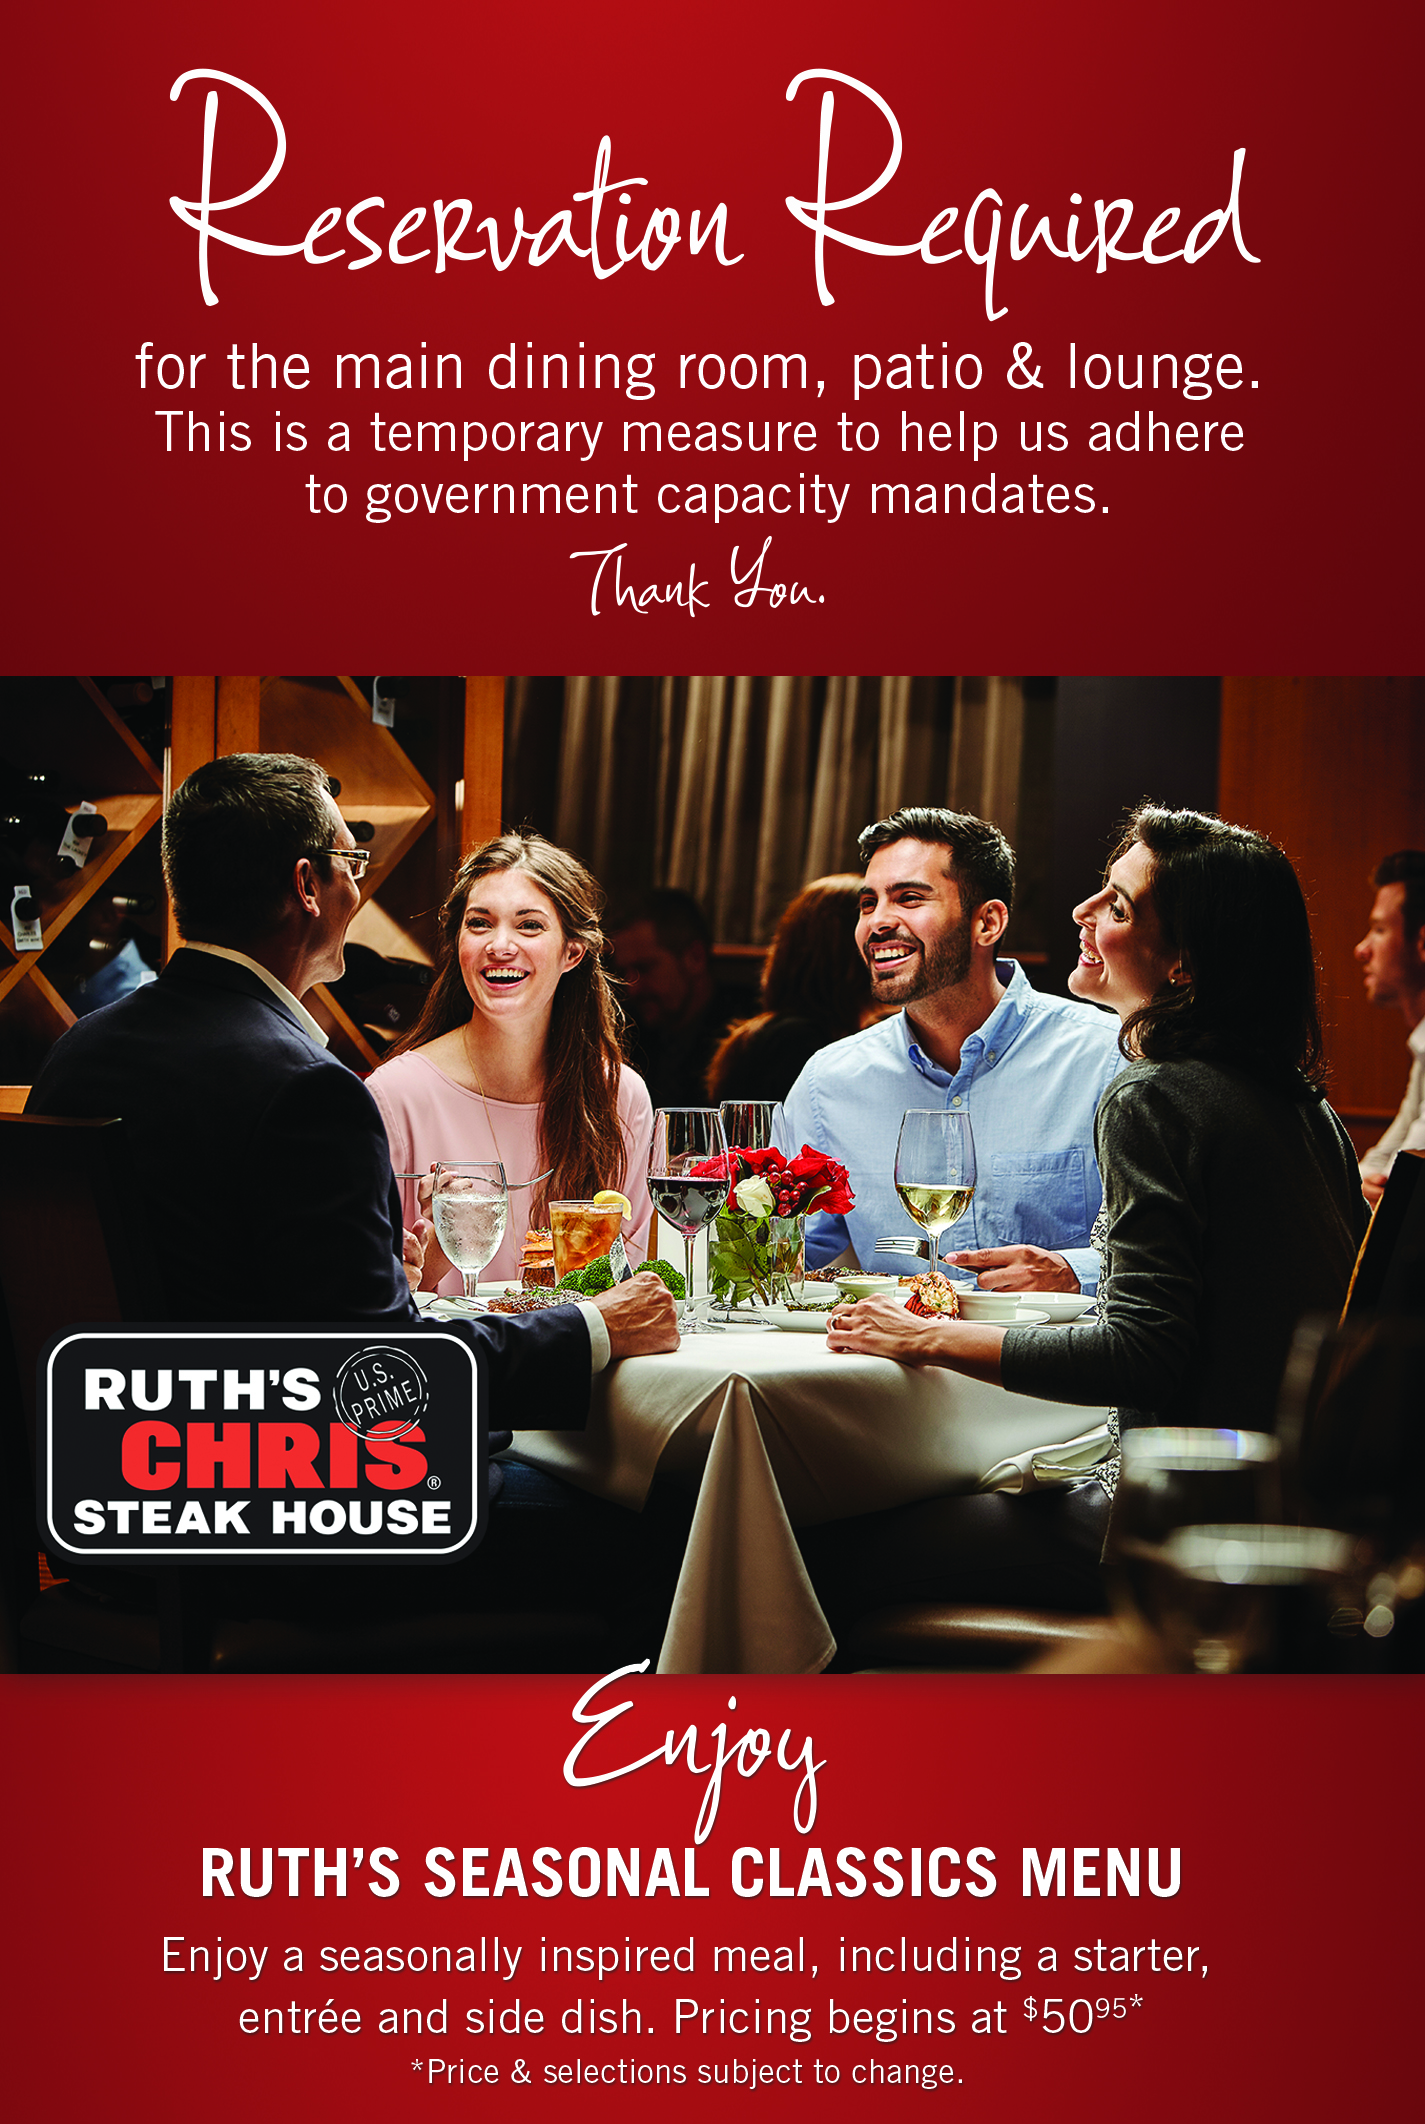 Advanced reservations temporarily required at Ruth's Chris Virginia Beach due to current dining restrictions.